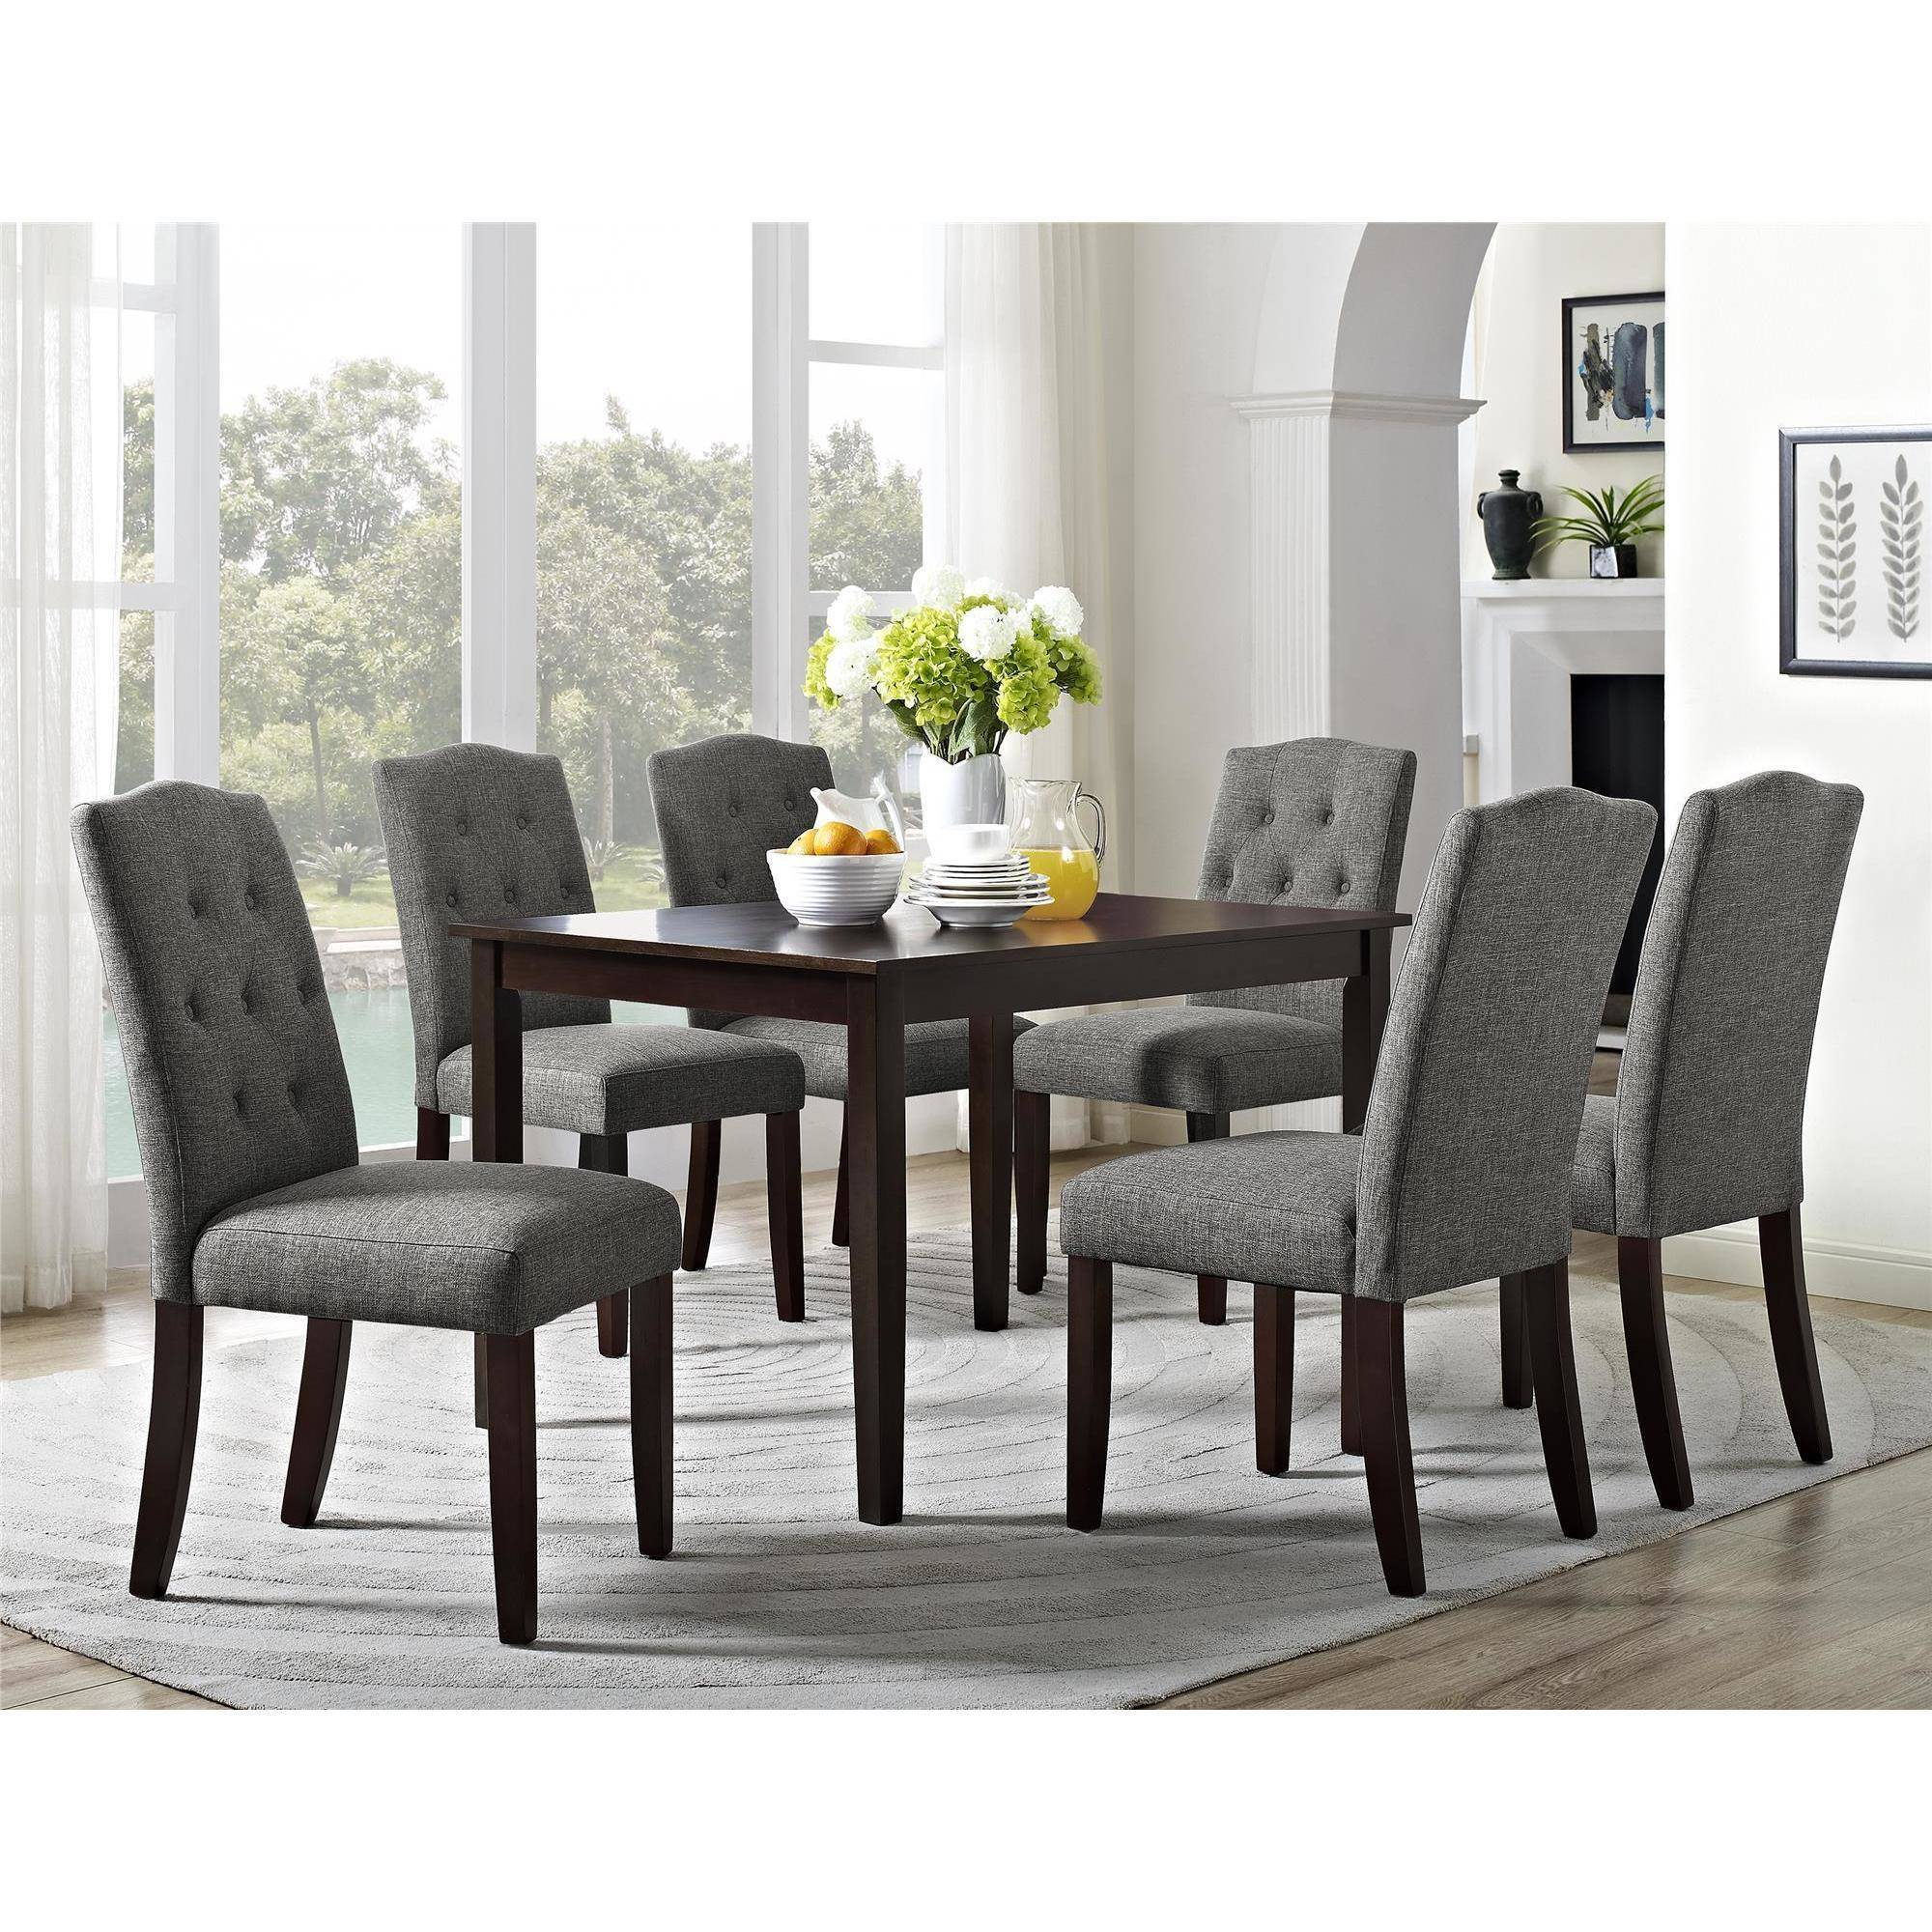 Dining Room Enchanting Tufted Dining Chair For Home